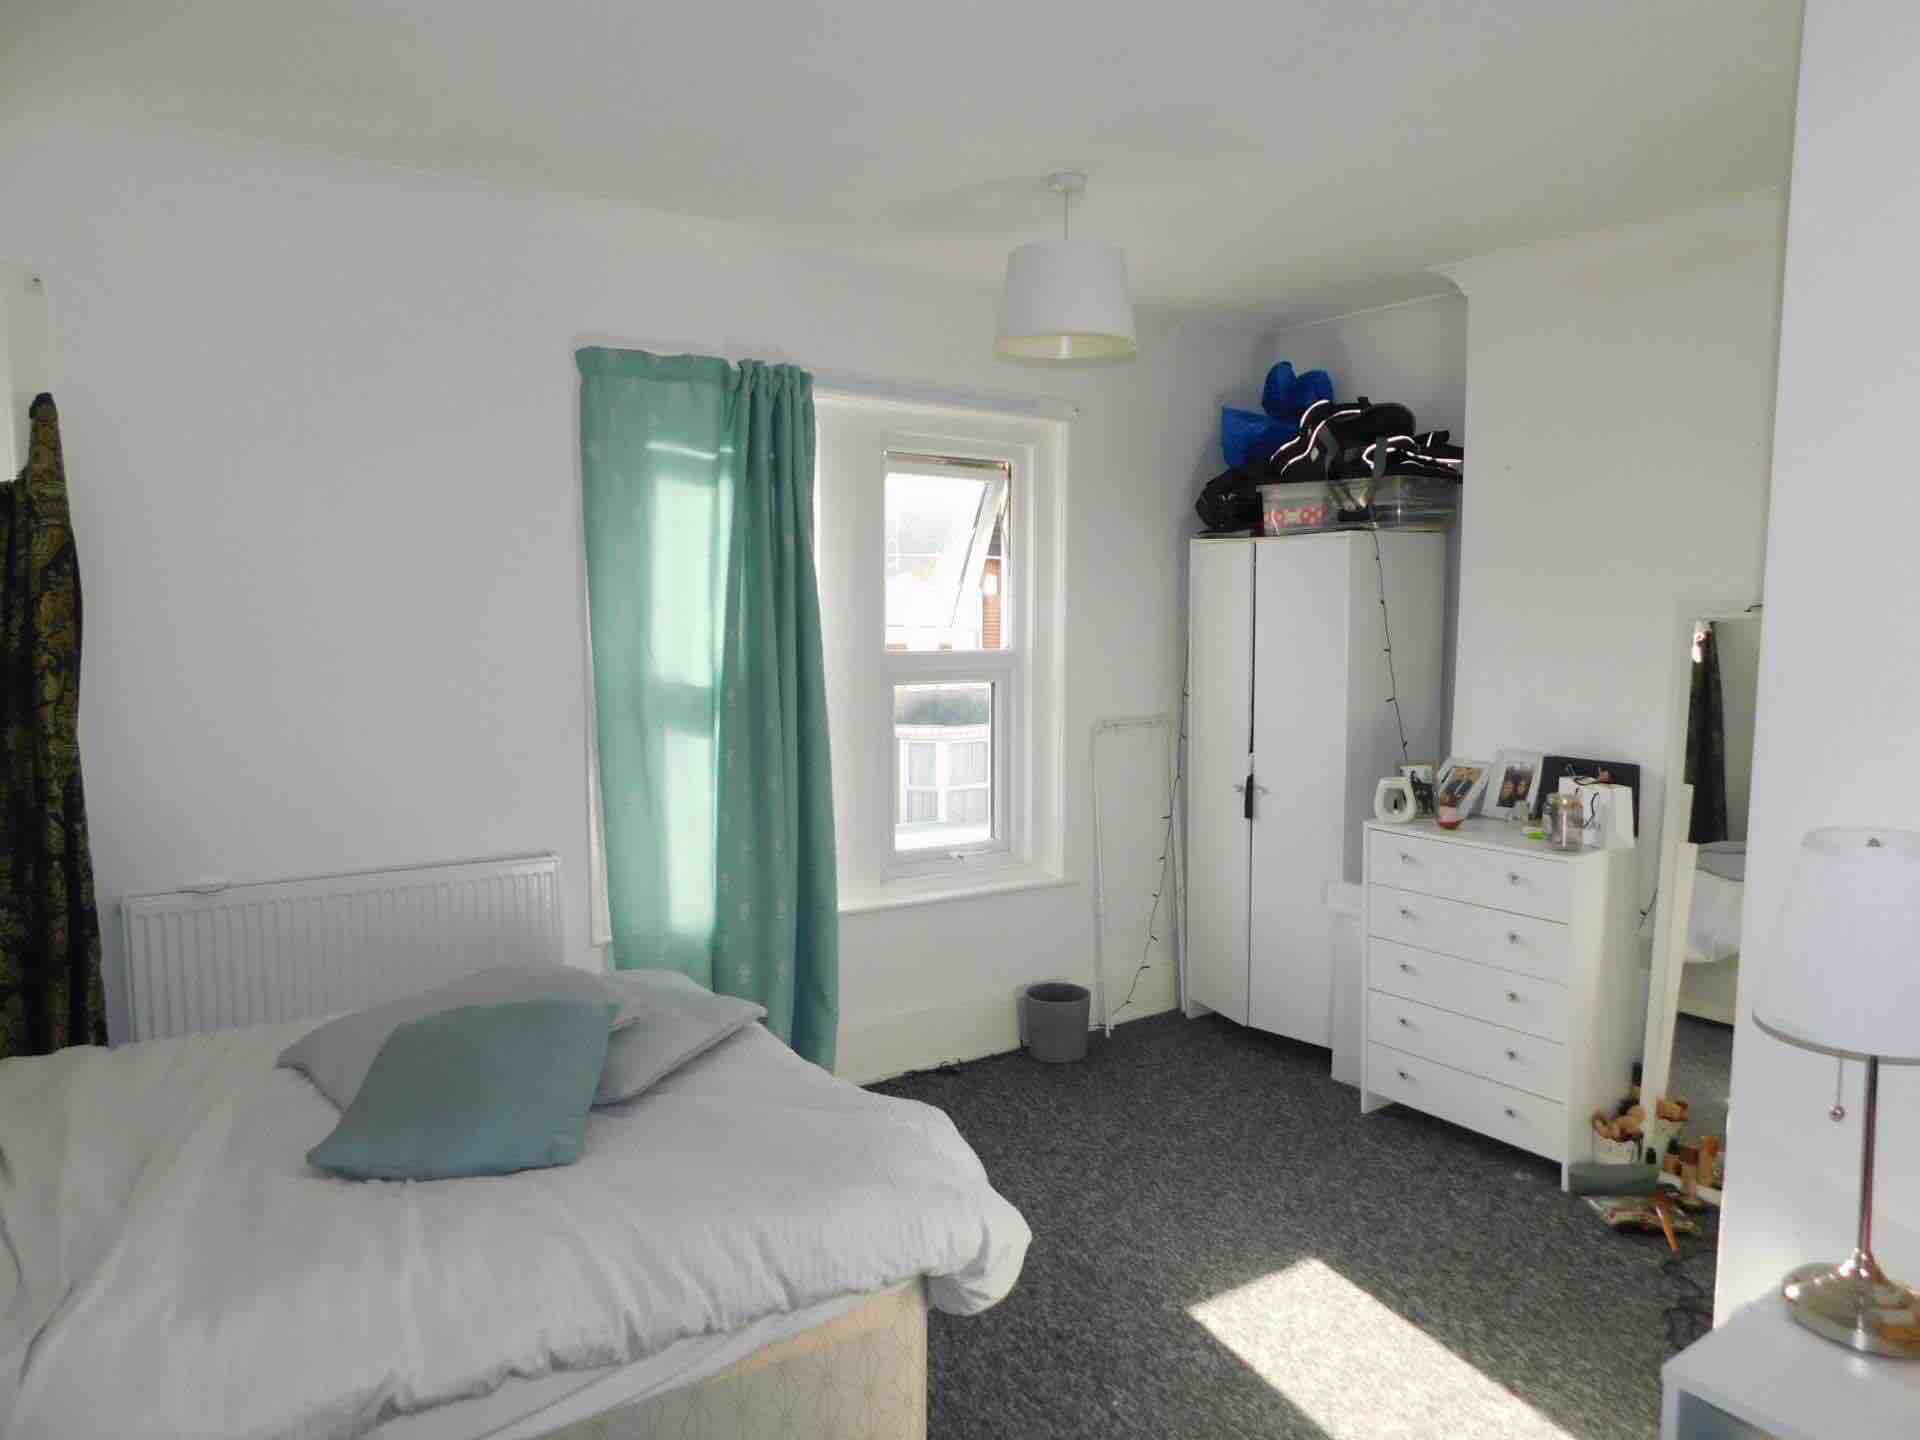 1 room in Shadwell, London, E1 1LD RoomsLocal image